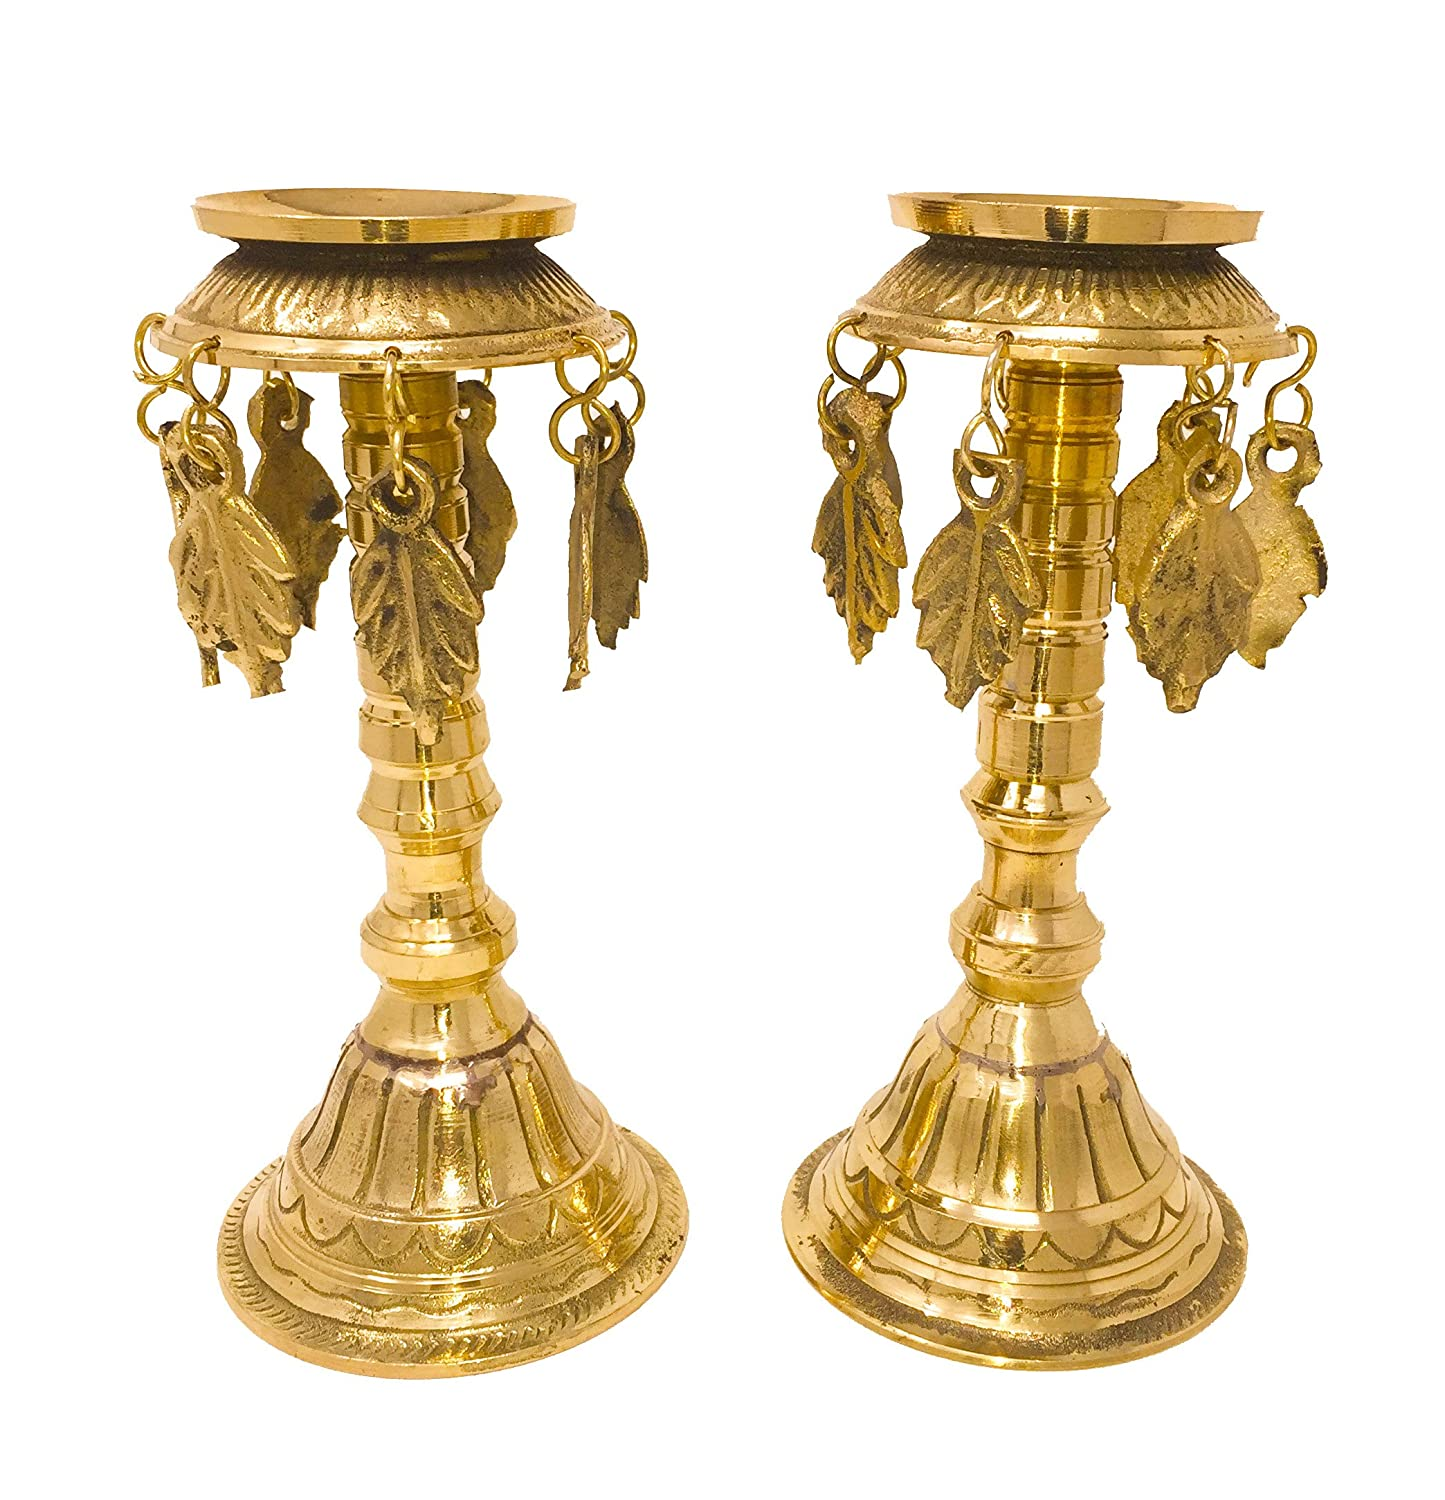 Reiki Juccini Brass Candle Holder: Ideal Candle Holder Votive Candles Votive Candle Gardens Panas 4.25, Brass Aromatherapy,Meditation 4.25 Party Single Home Decor Votive Candle Gardens Panas Spa Gifts for Wedding